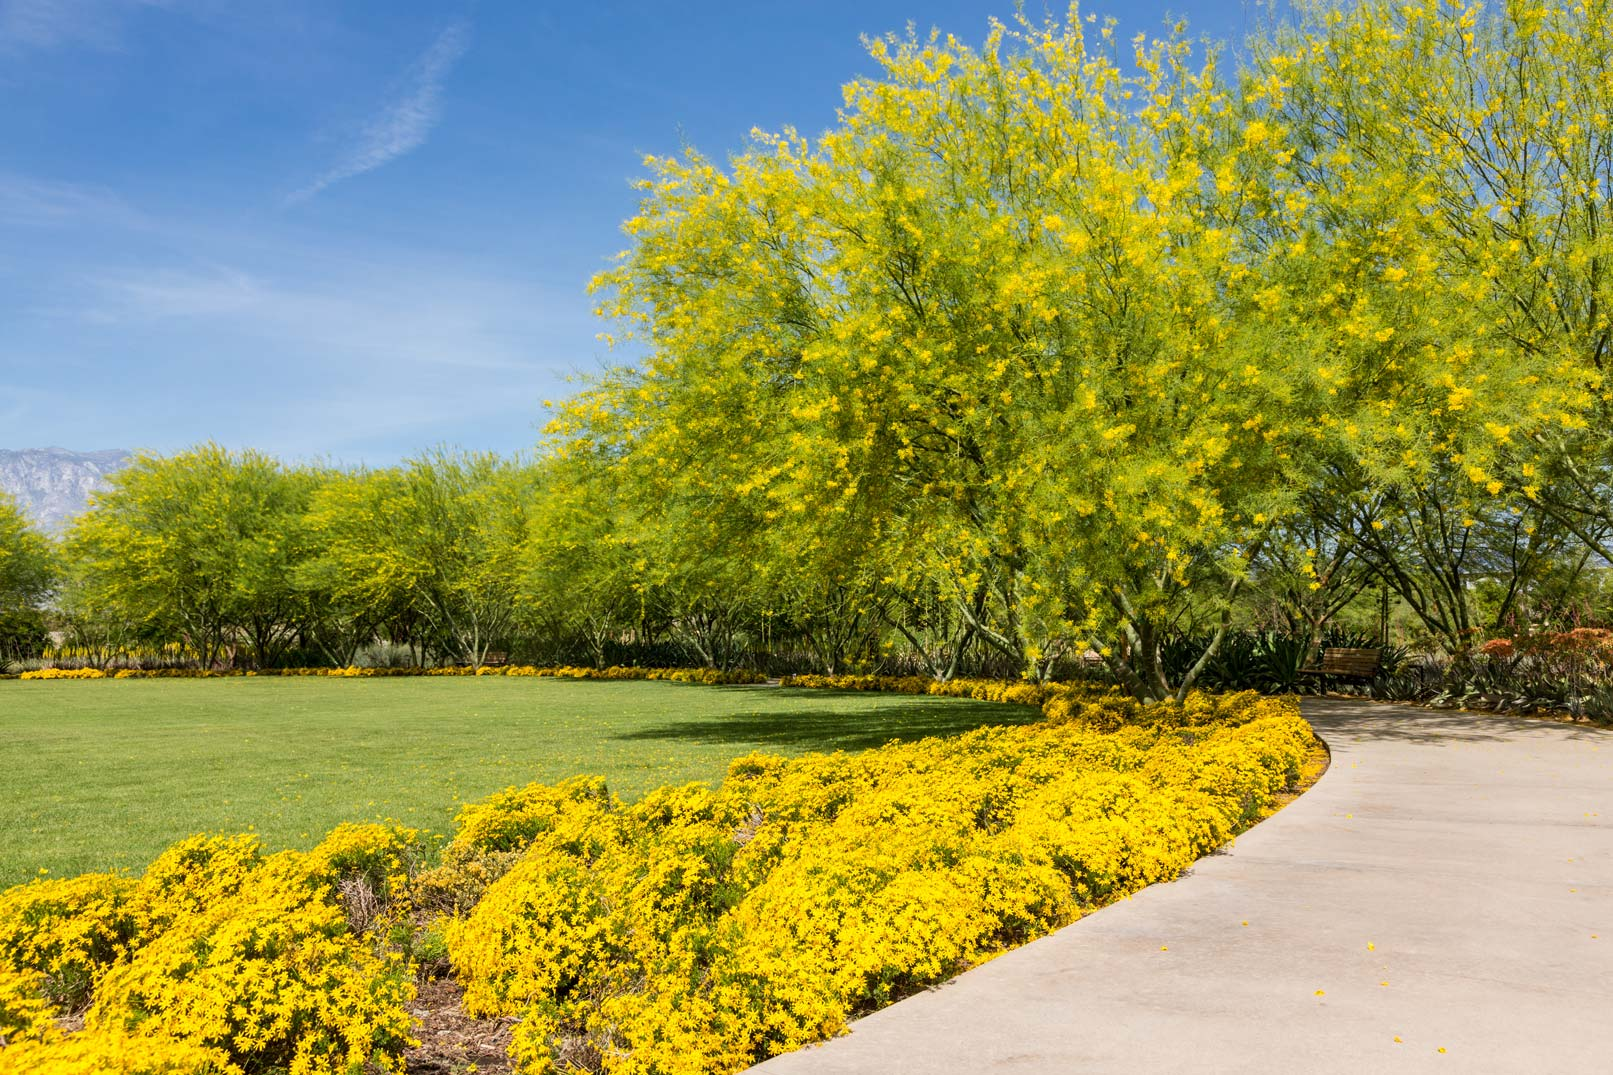 The right side of the Great Lawn with bright yellow Damianita blooms bordering the lawn sits in the foreground. In the background, the lawn is bordered by blooming Palo Verde trees and a peek-a-boo mountain view.